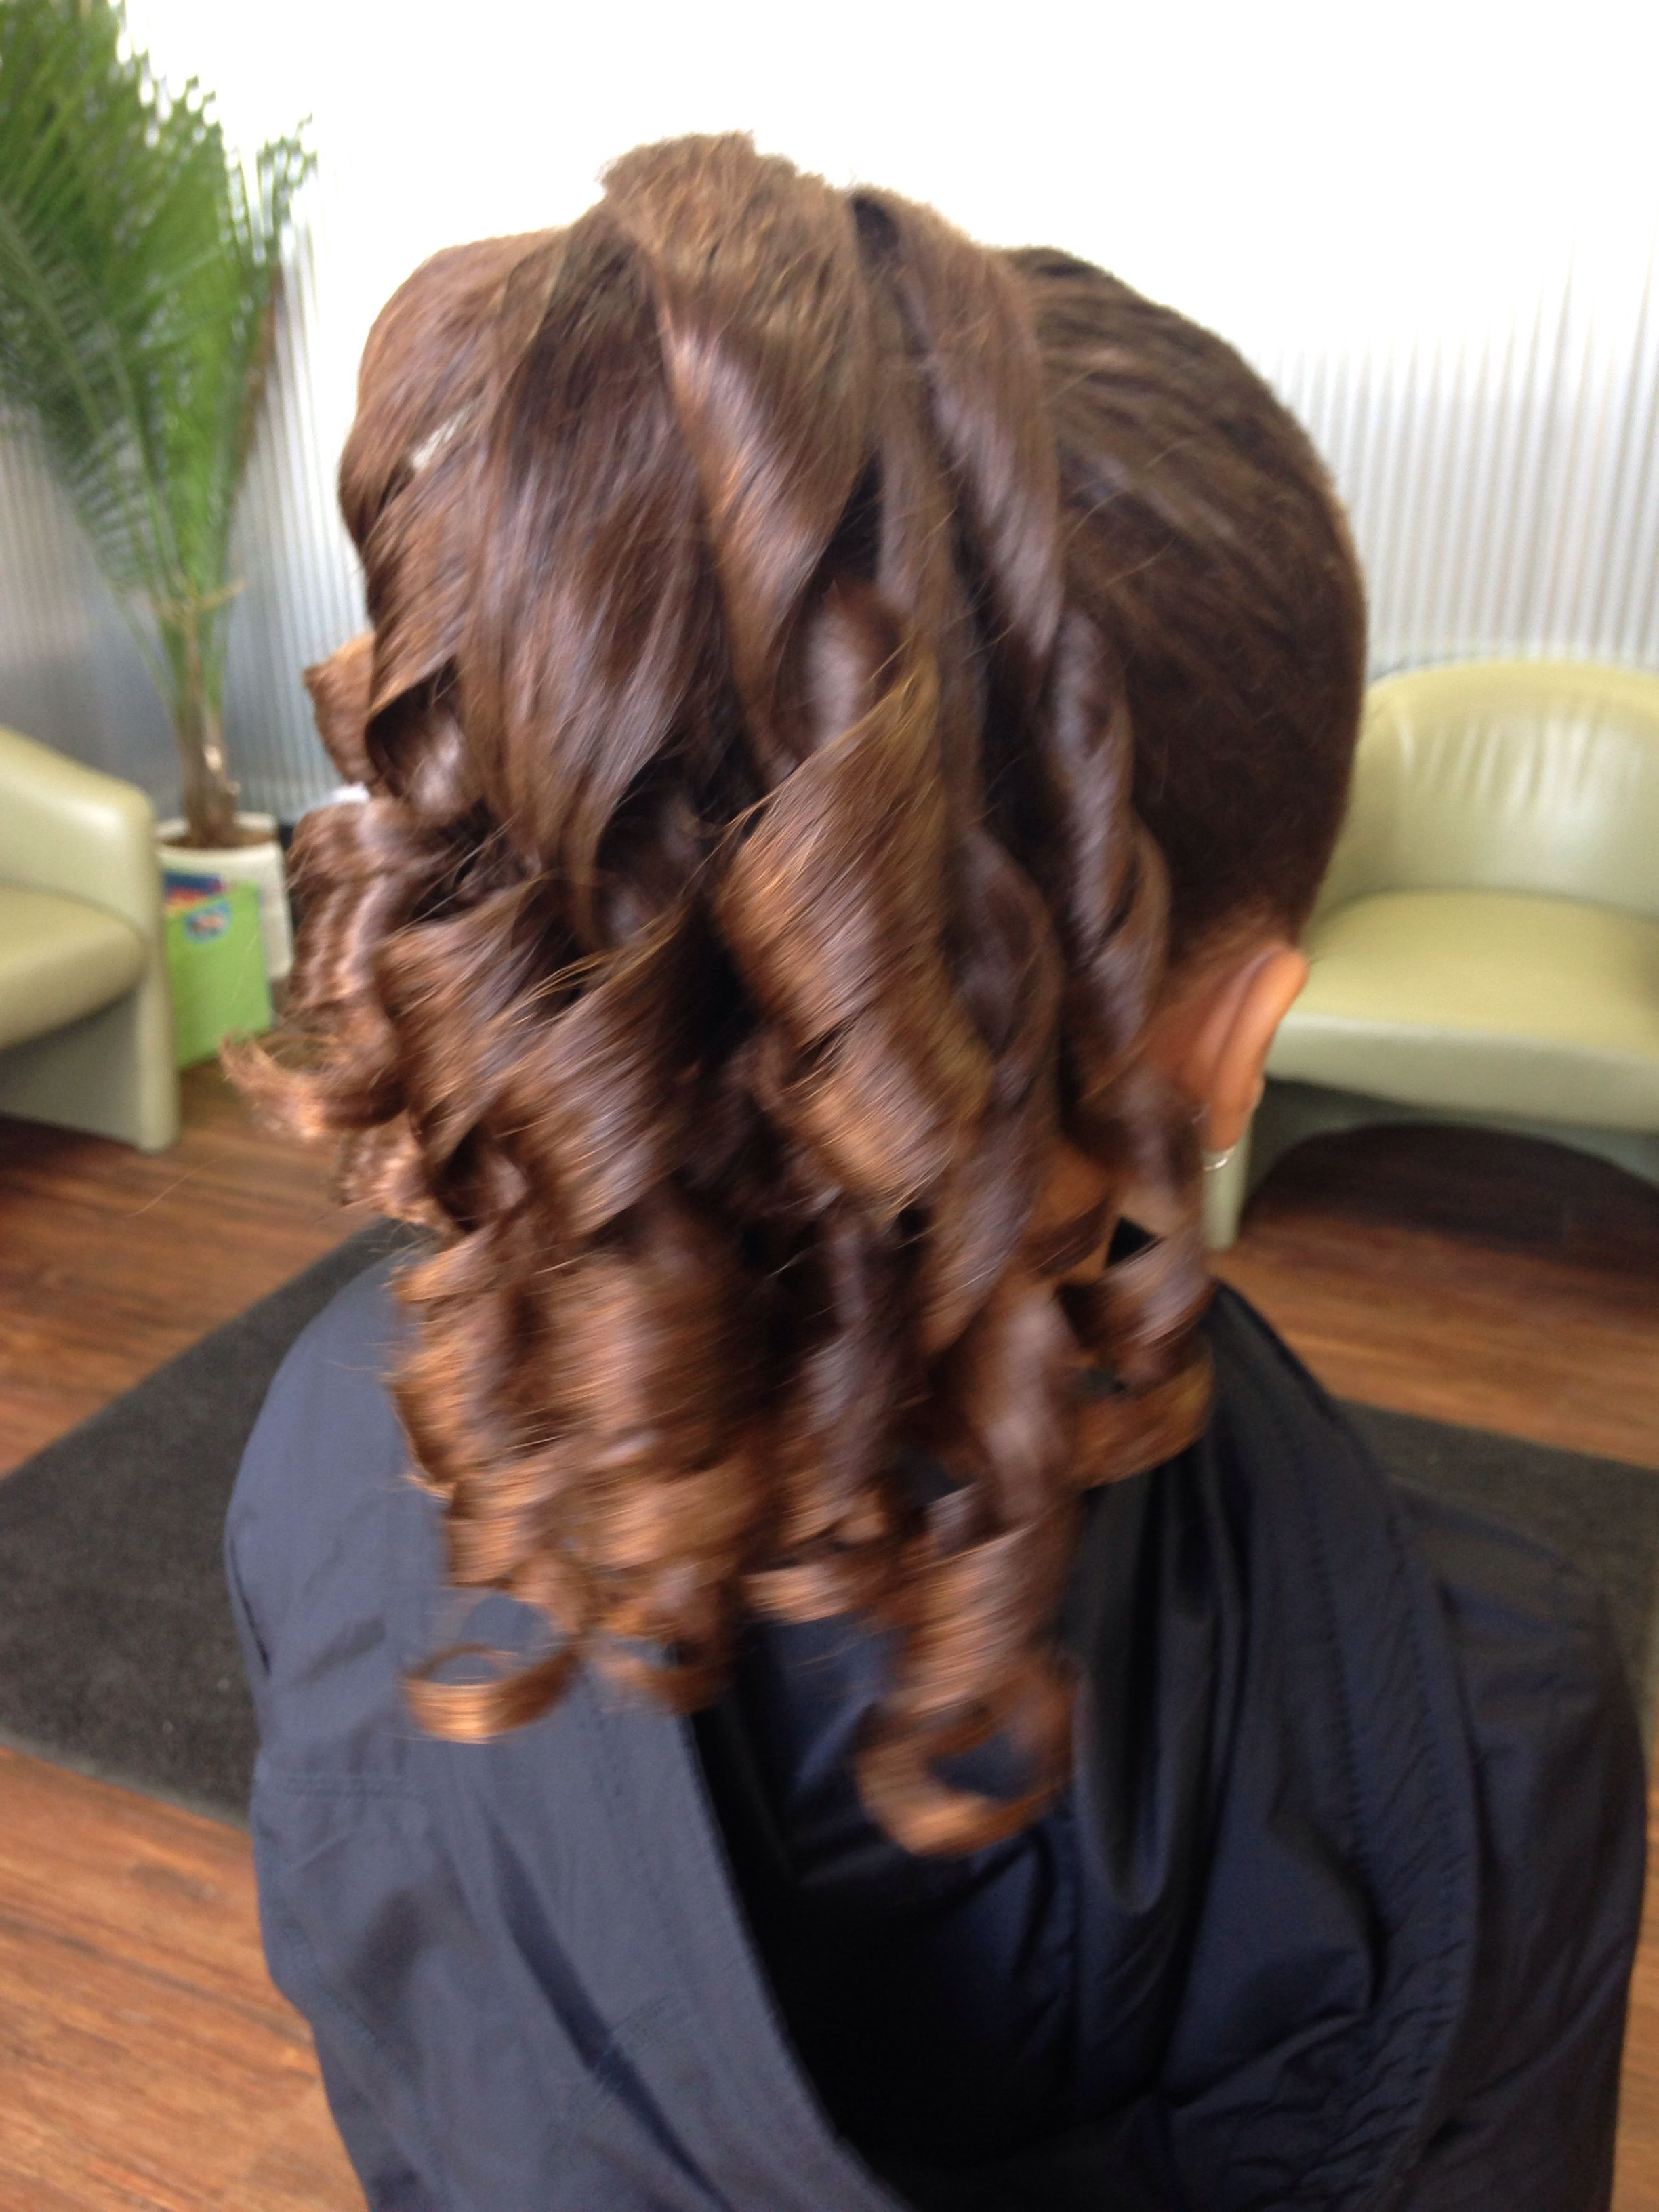 Curly Ponytail Dance Recital Hair Styles Ponytail Hairstyles Ponytail Hairstyles Easy